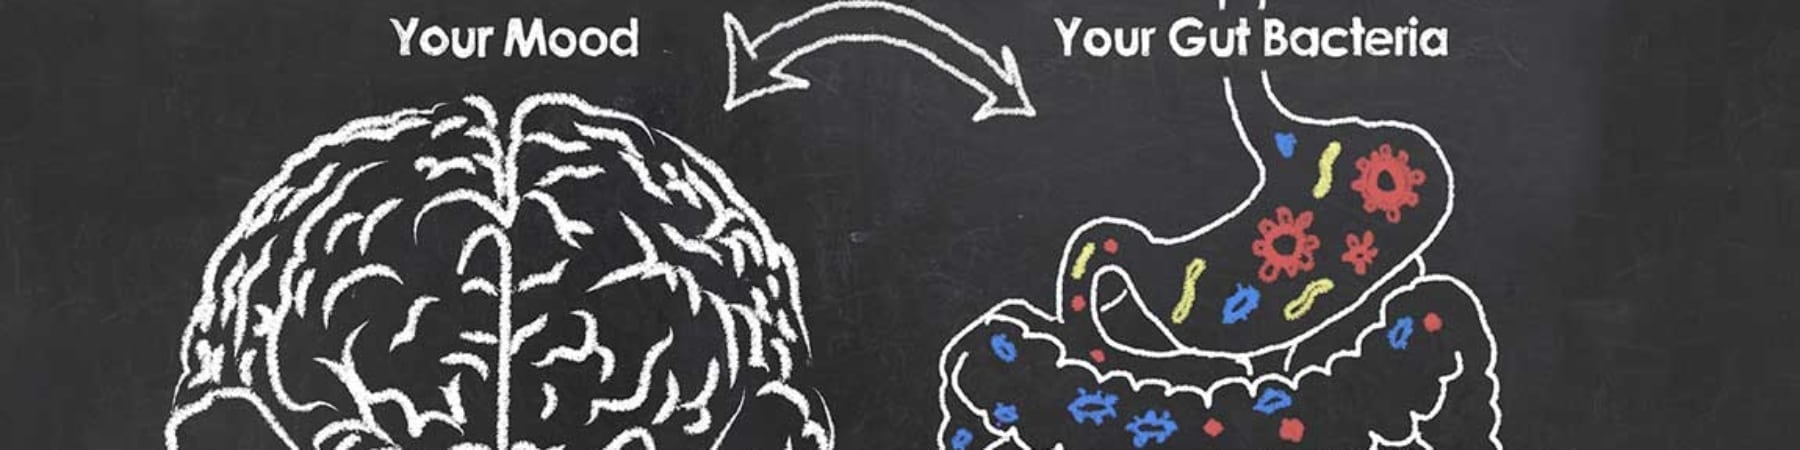 Complex Connections Between the Gut and Brain Influence Mood, Behavior and More